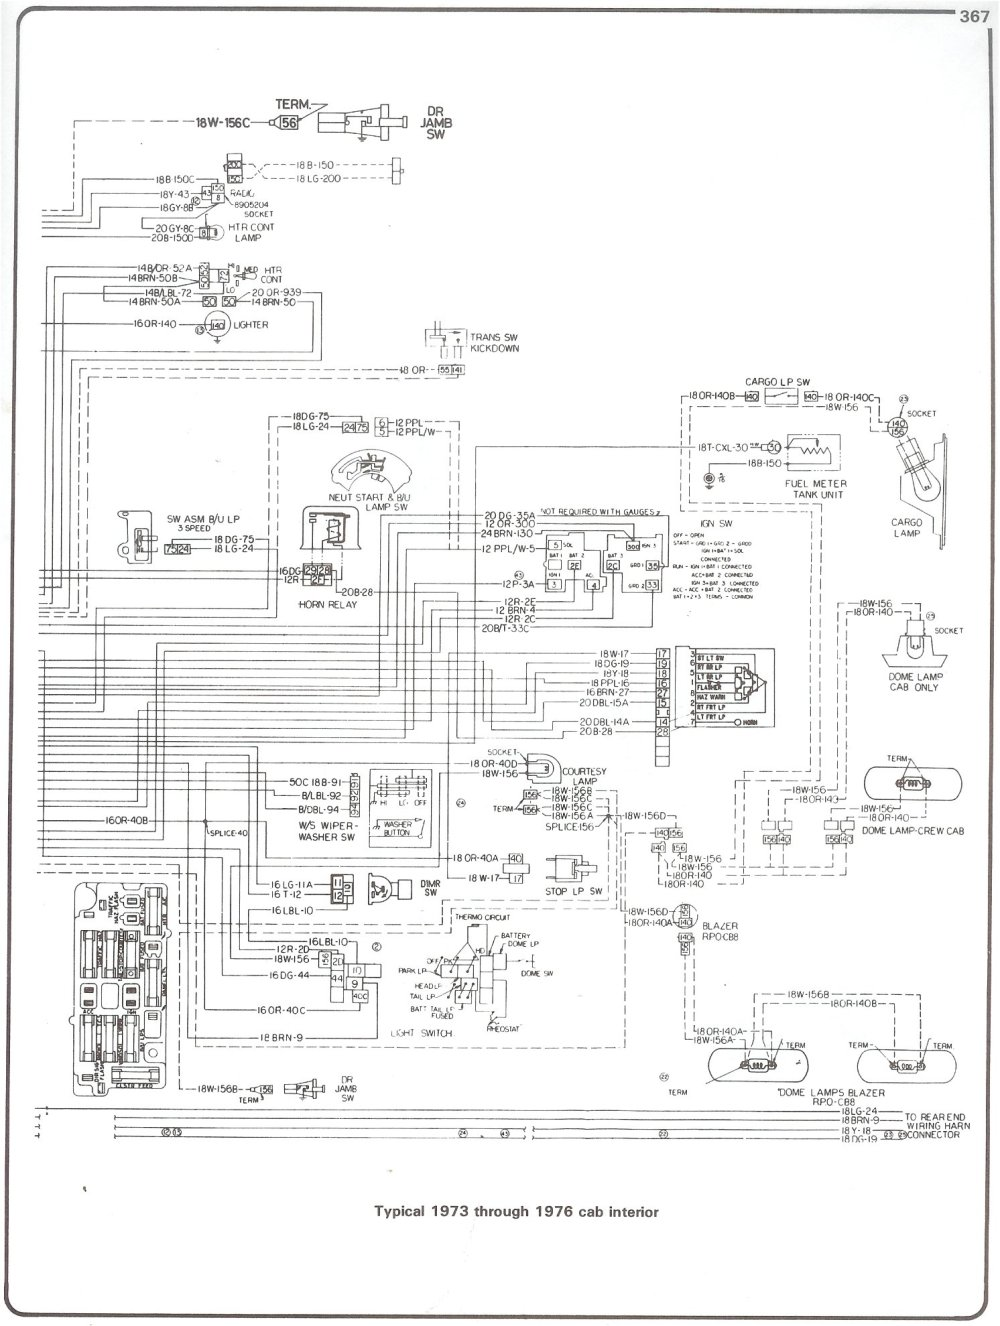 medium resolution of gm solenoid wiring 1977 wiring diagram centre complete 73 87 wiring diagramsgm solenoid wiring 1977 19